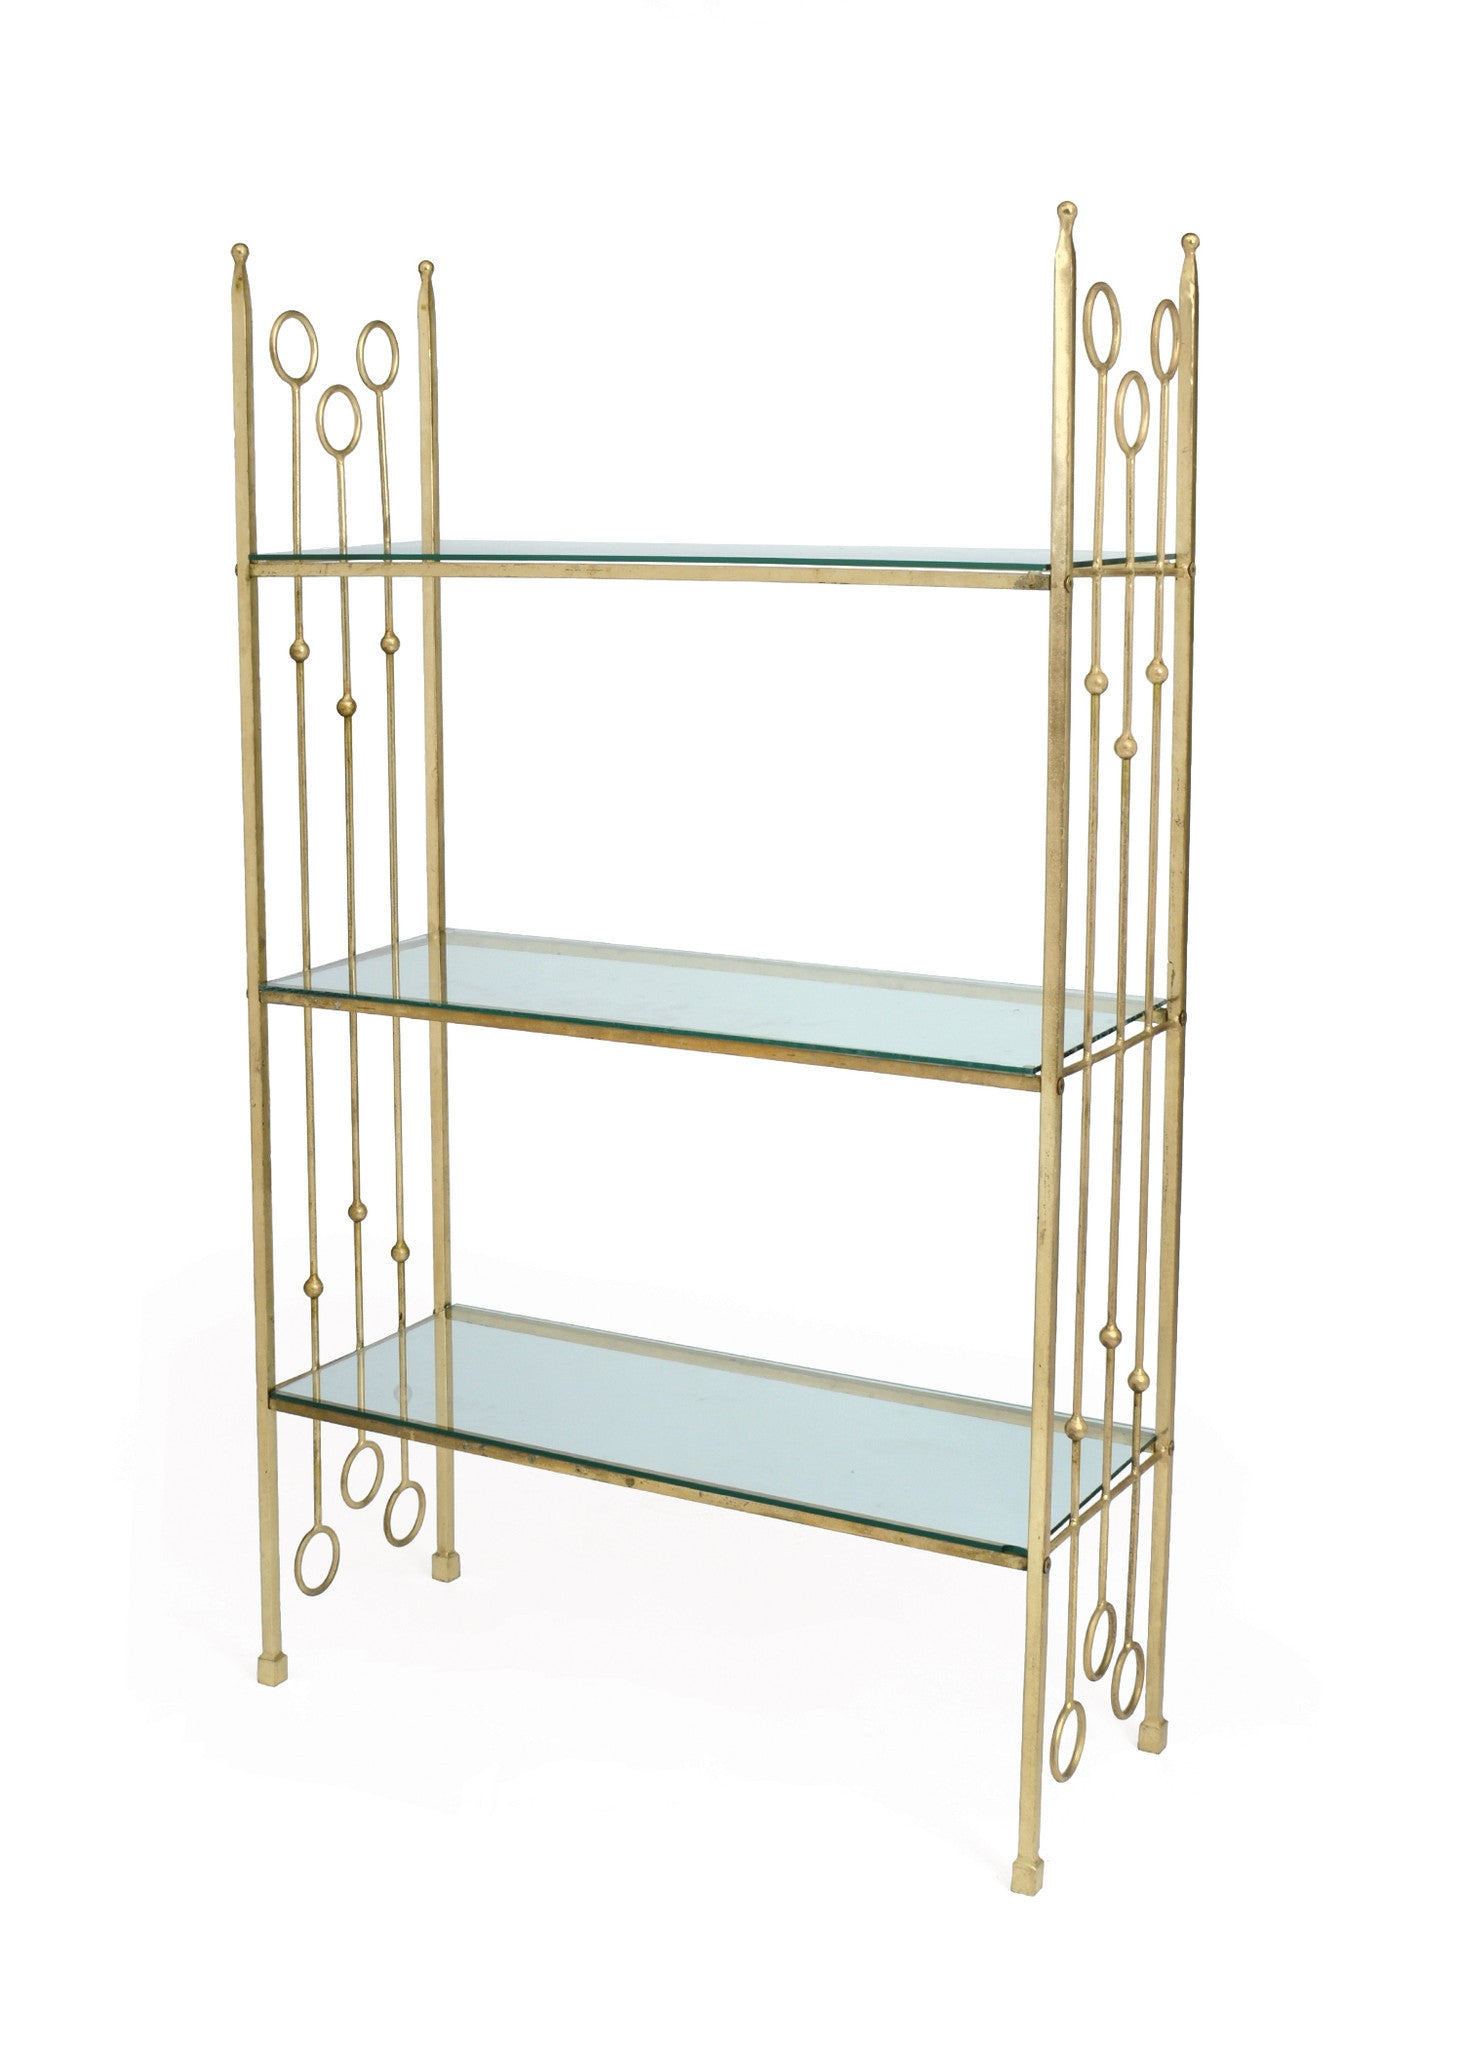 New Caste Iron Ring Shelving in Brass and Glass